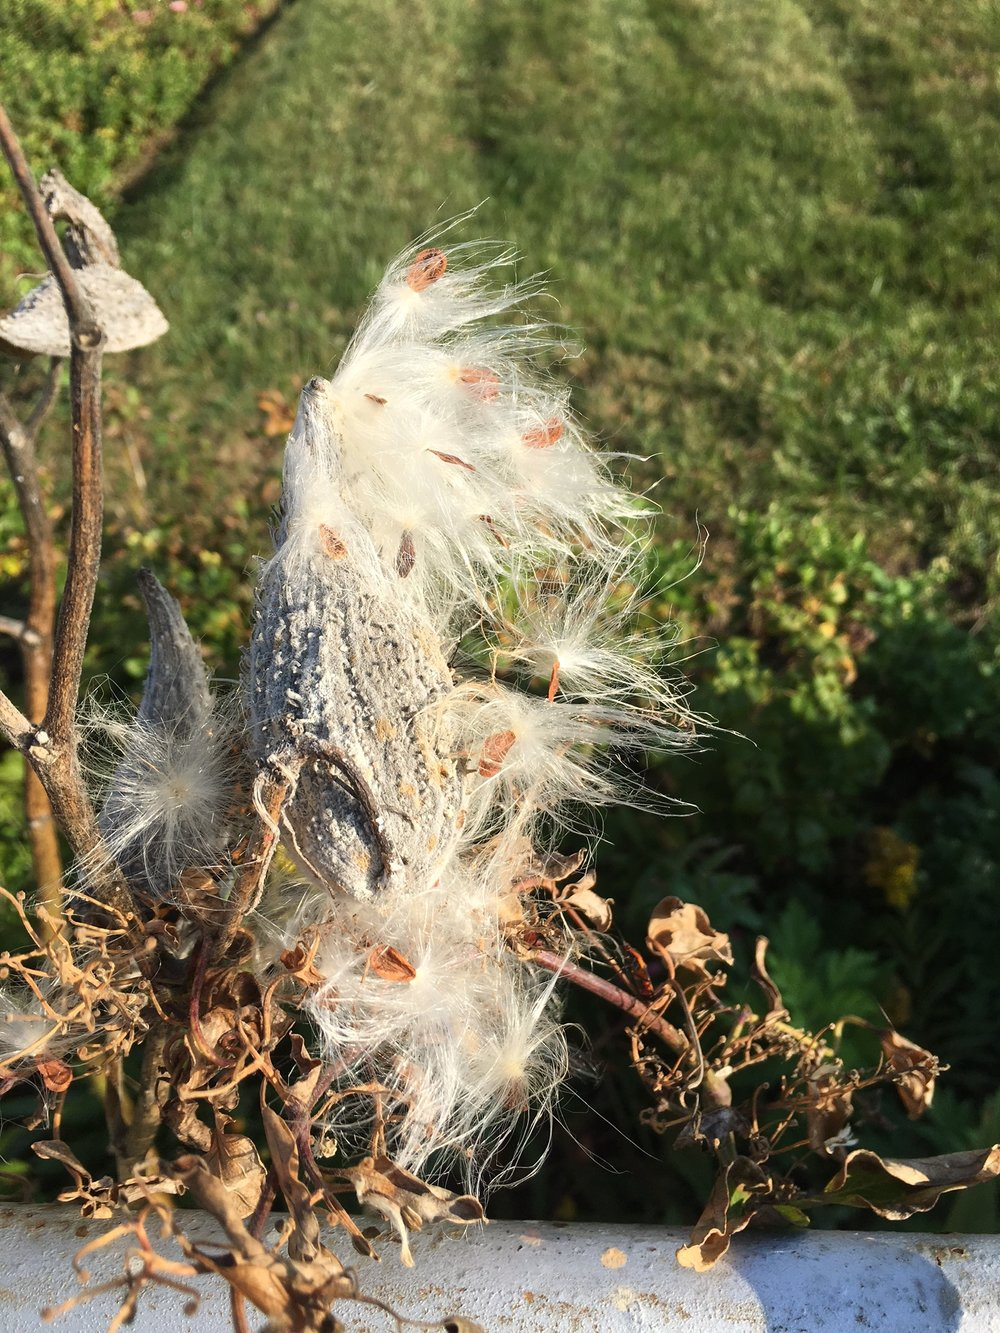 Milkweeds are weeping their seeds for next years monarchs.